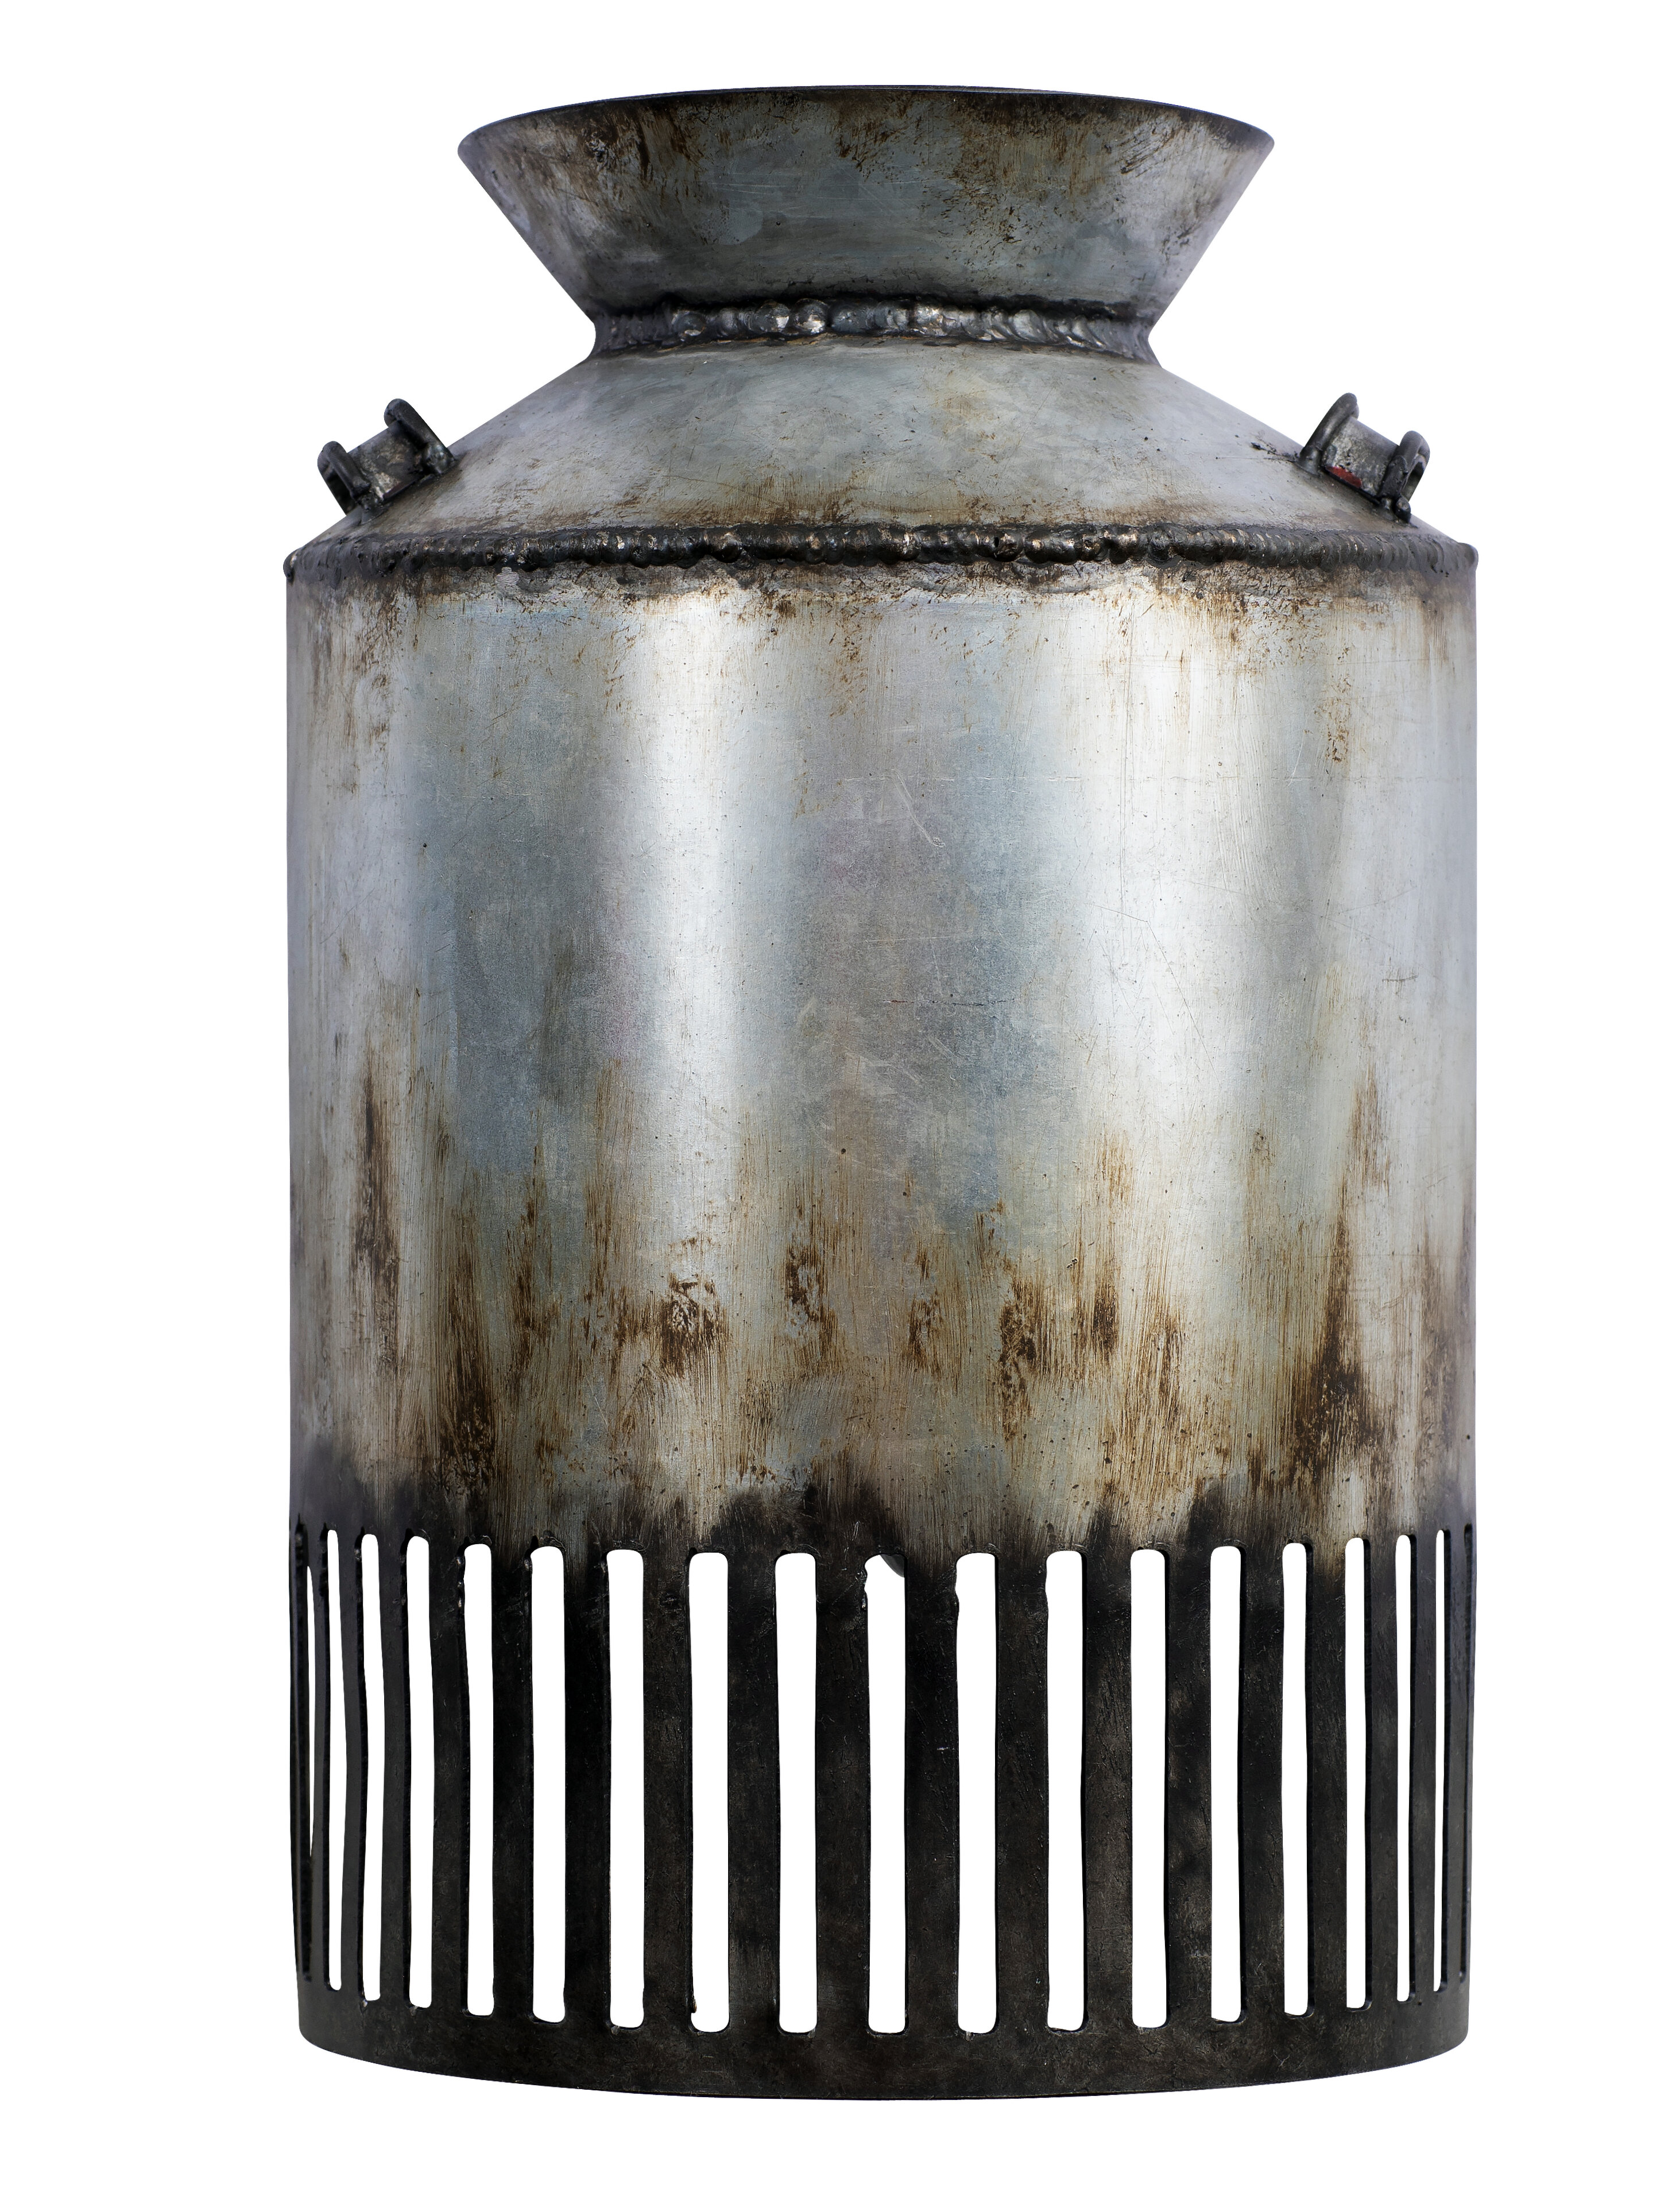 Flush Mount Williston Forge Wall Sconces You Ll Love In 2021 Wayfair